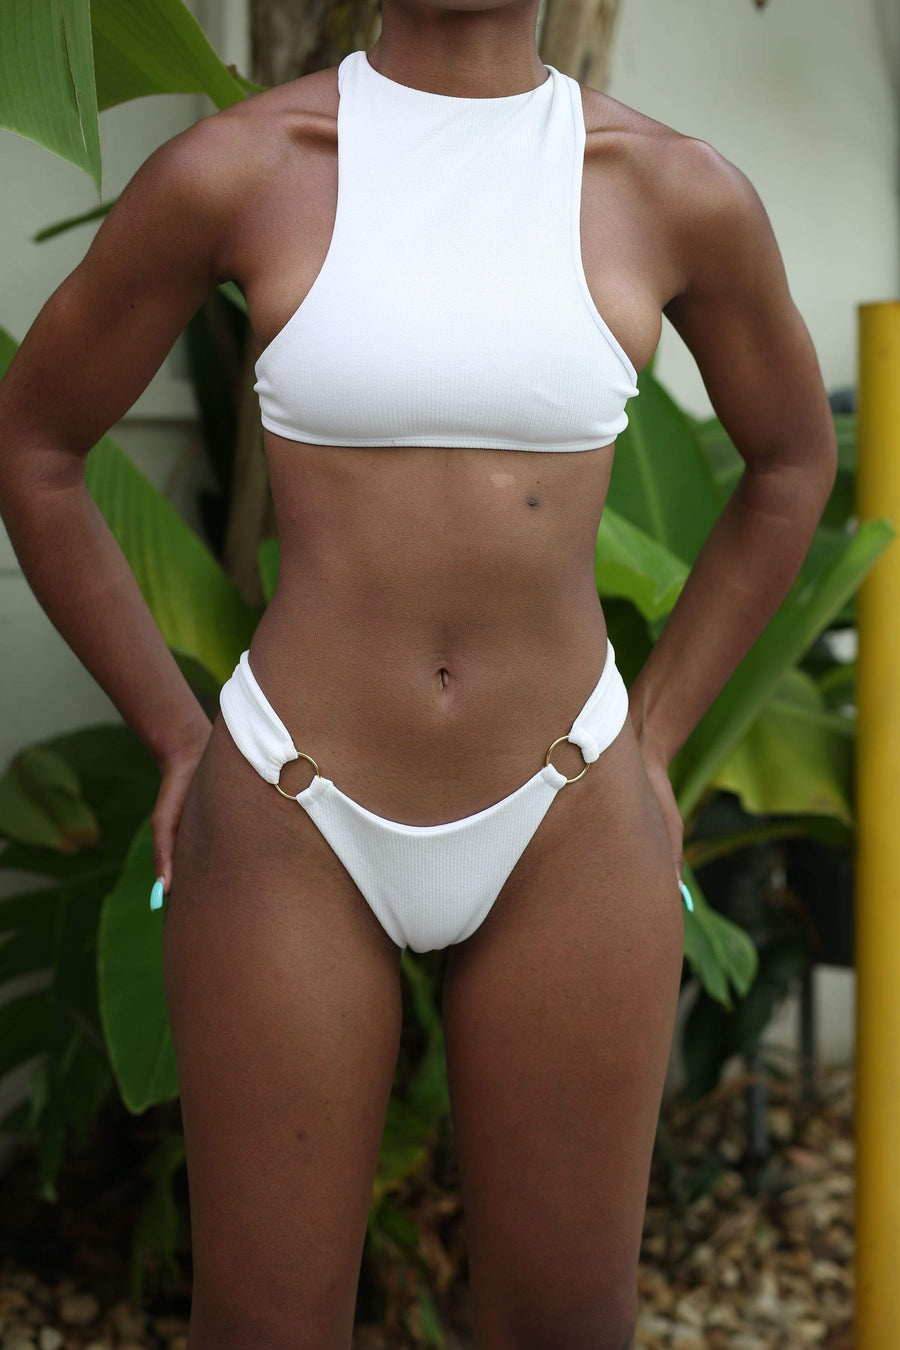 Ramaé Swimwear RING LINKED CRISSCROSS BACK BIKINI SWIMSUIT swimsuits 2019 trendy bikini trendy swimsuits instagram bikini brands trendy bathing suits spring break swimsuit cheeky bikini high cut bikini